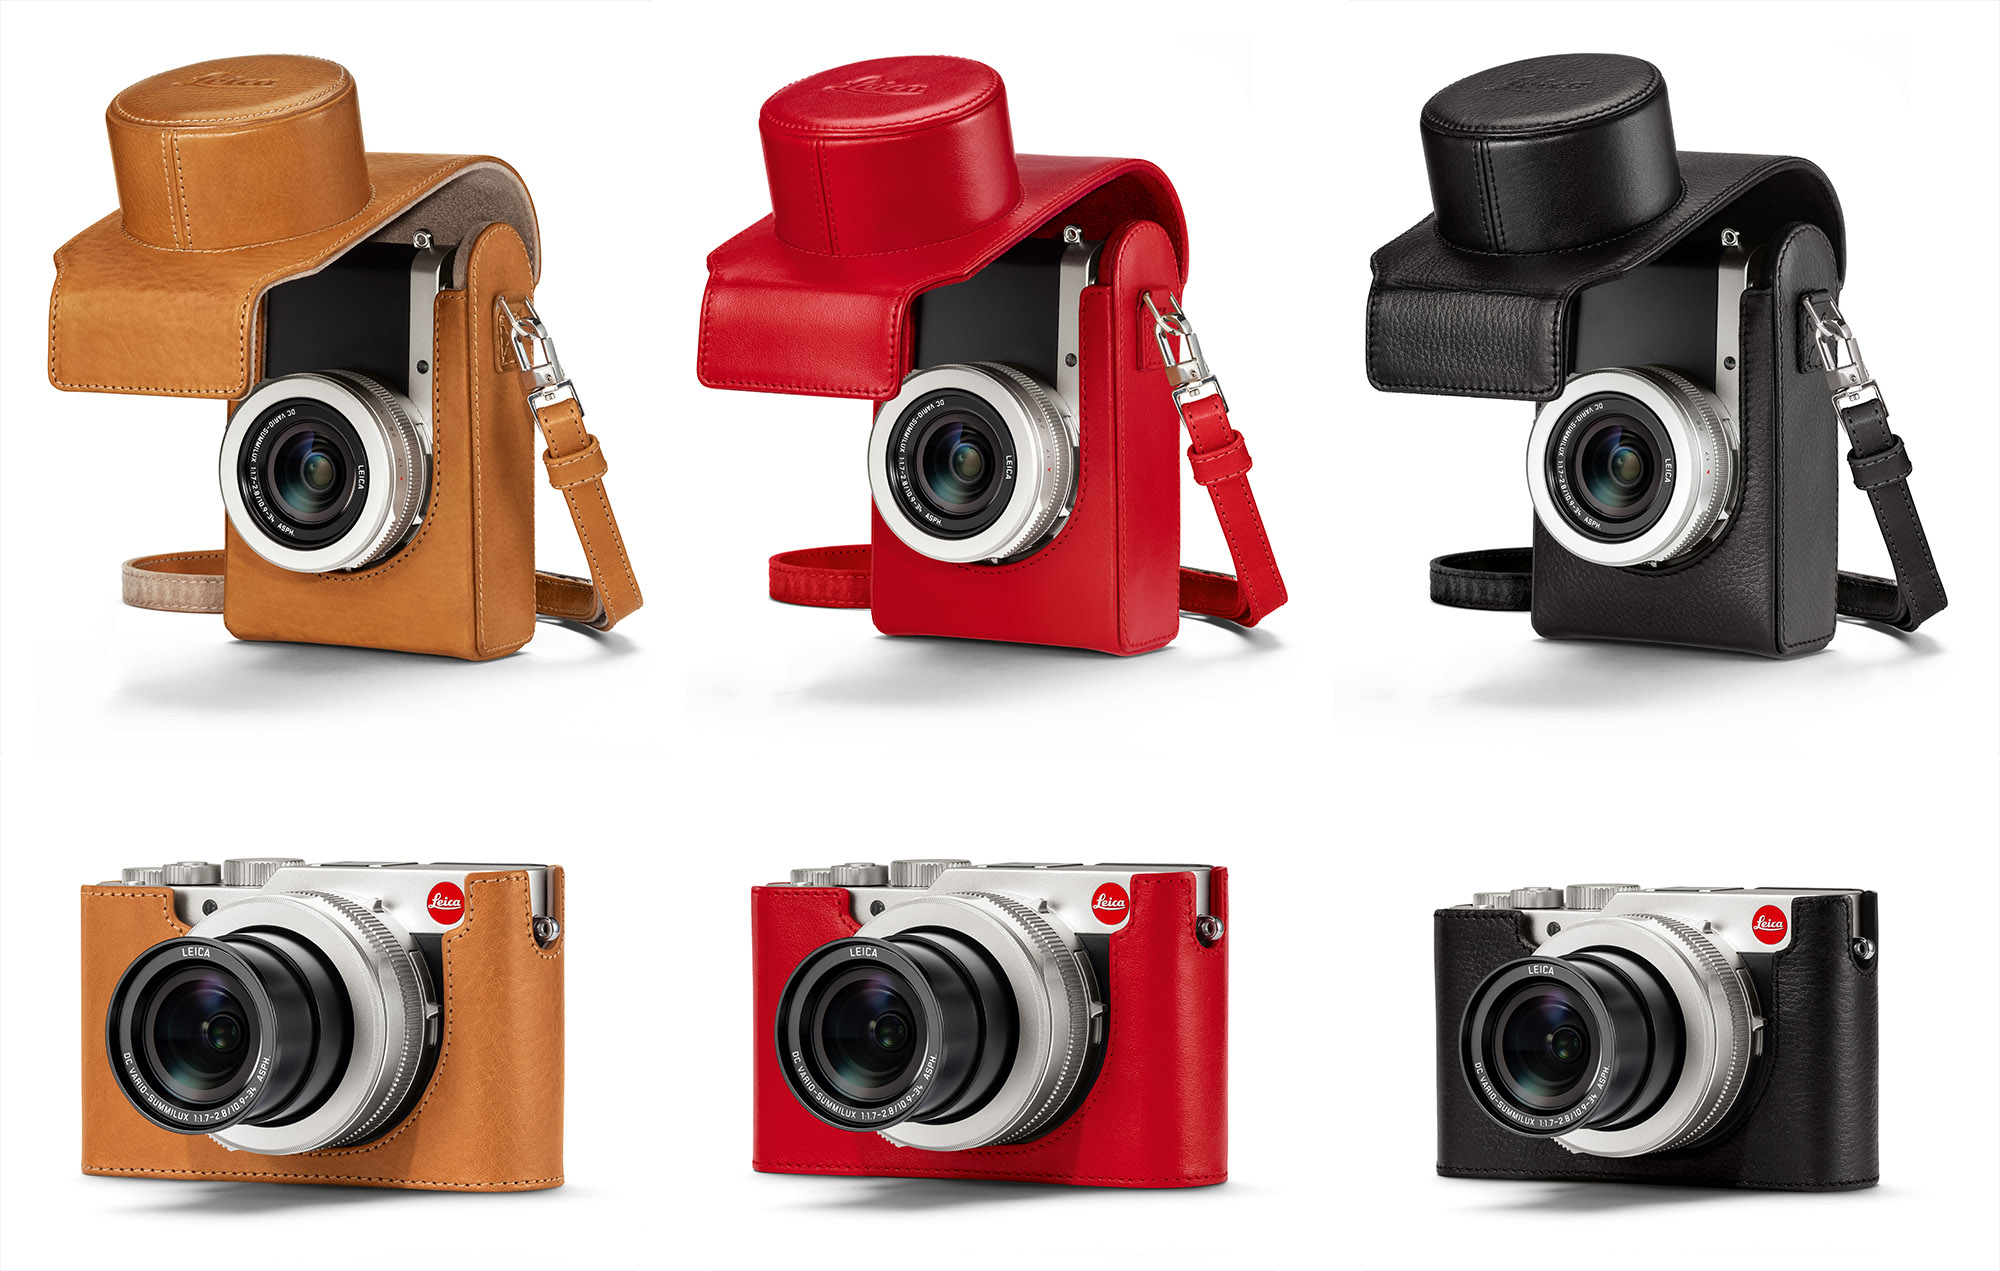 Leica Protector Case for D-Lux 7 Compact Camera Red